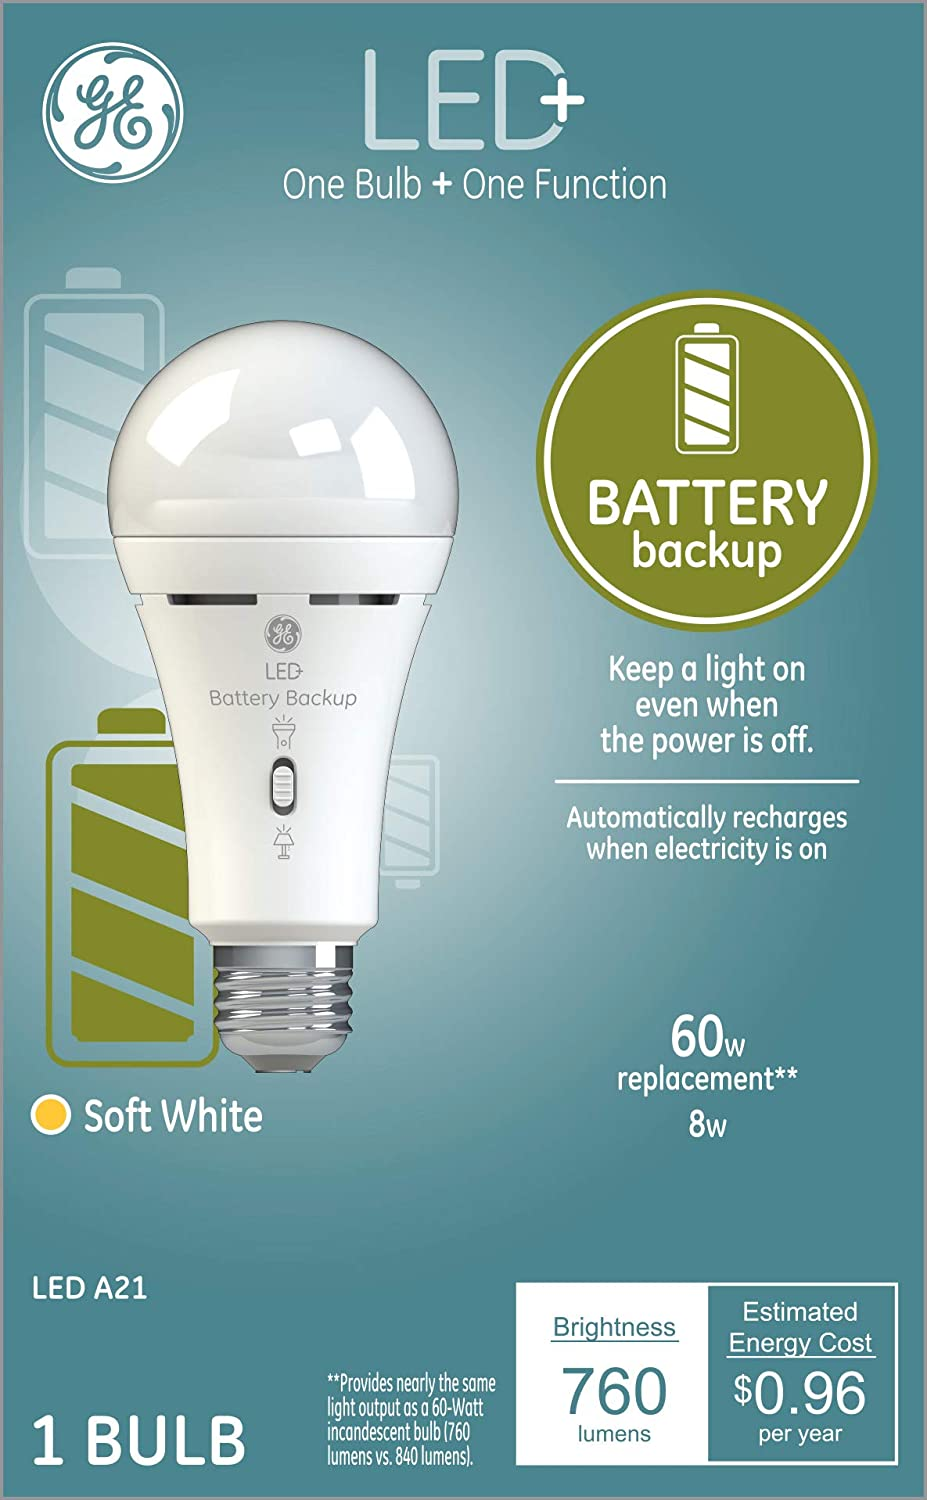 Ge Led Backup Battery Light Bulb A21 Emergency Light Bulb 60 Watt Replacement Soft White Rechargeable Light Bulbs For Power Outages Amazon Com